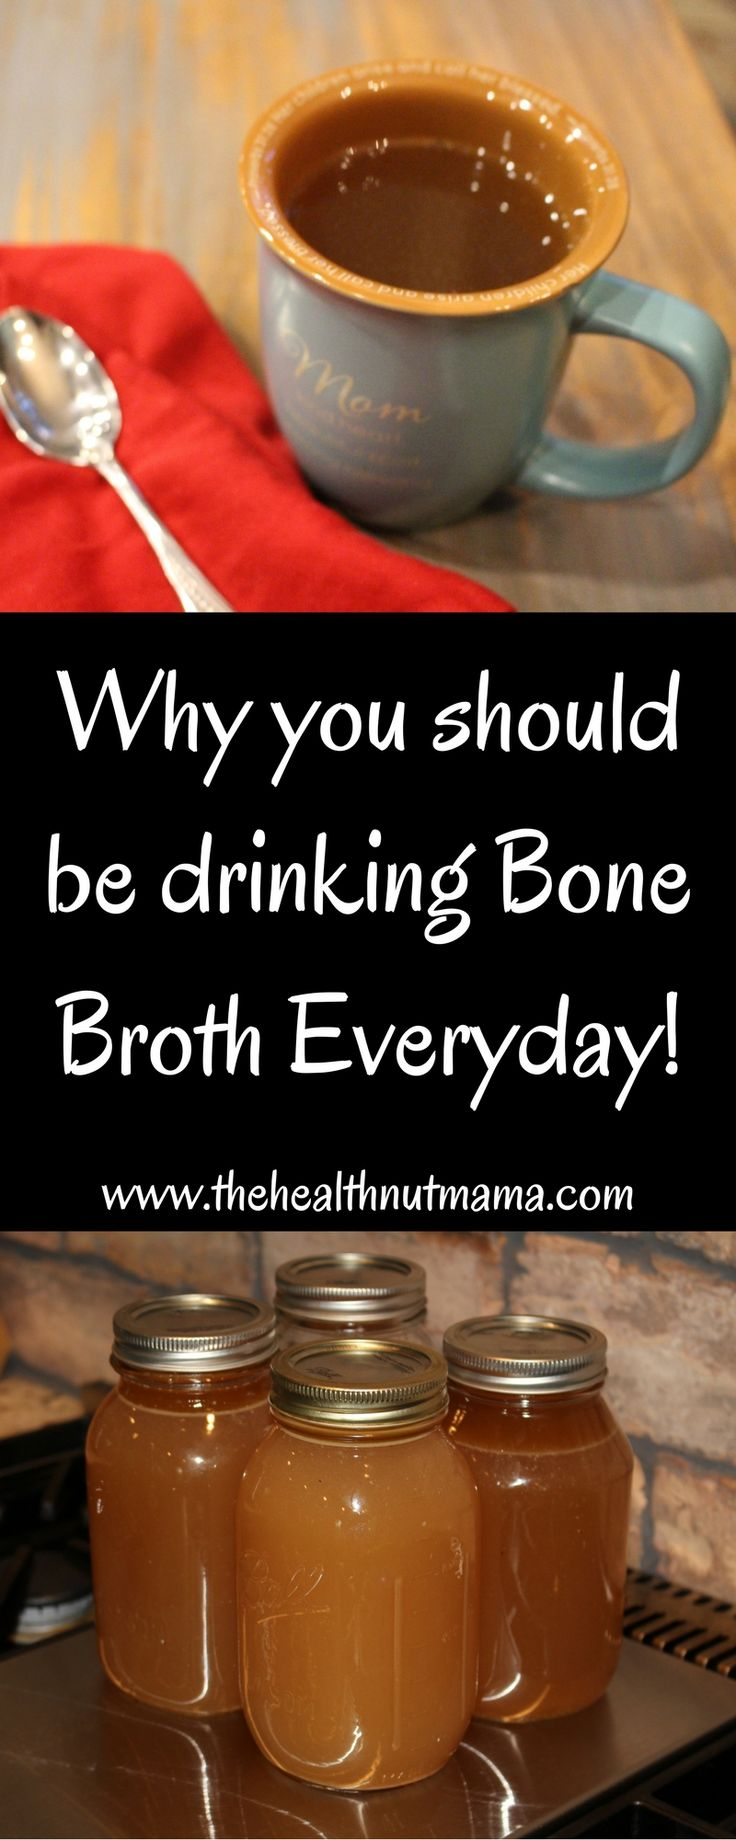 Why you should be drinking Bone Broth Everyday! The benefits of Bone Broth. If you have leaky gut or autoimmune disease, you need to be drinking it everyday! Great for Hair, Nails, Cellulite too! www.thehealthnutmama.com